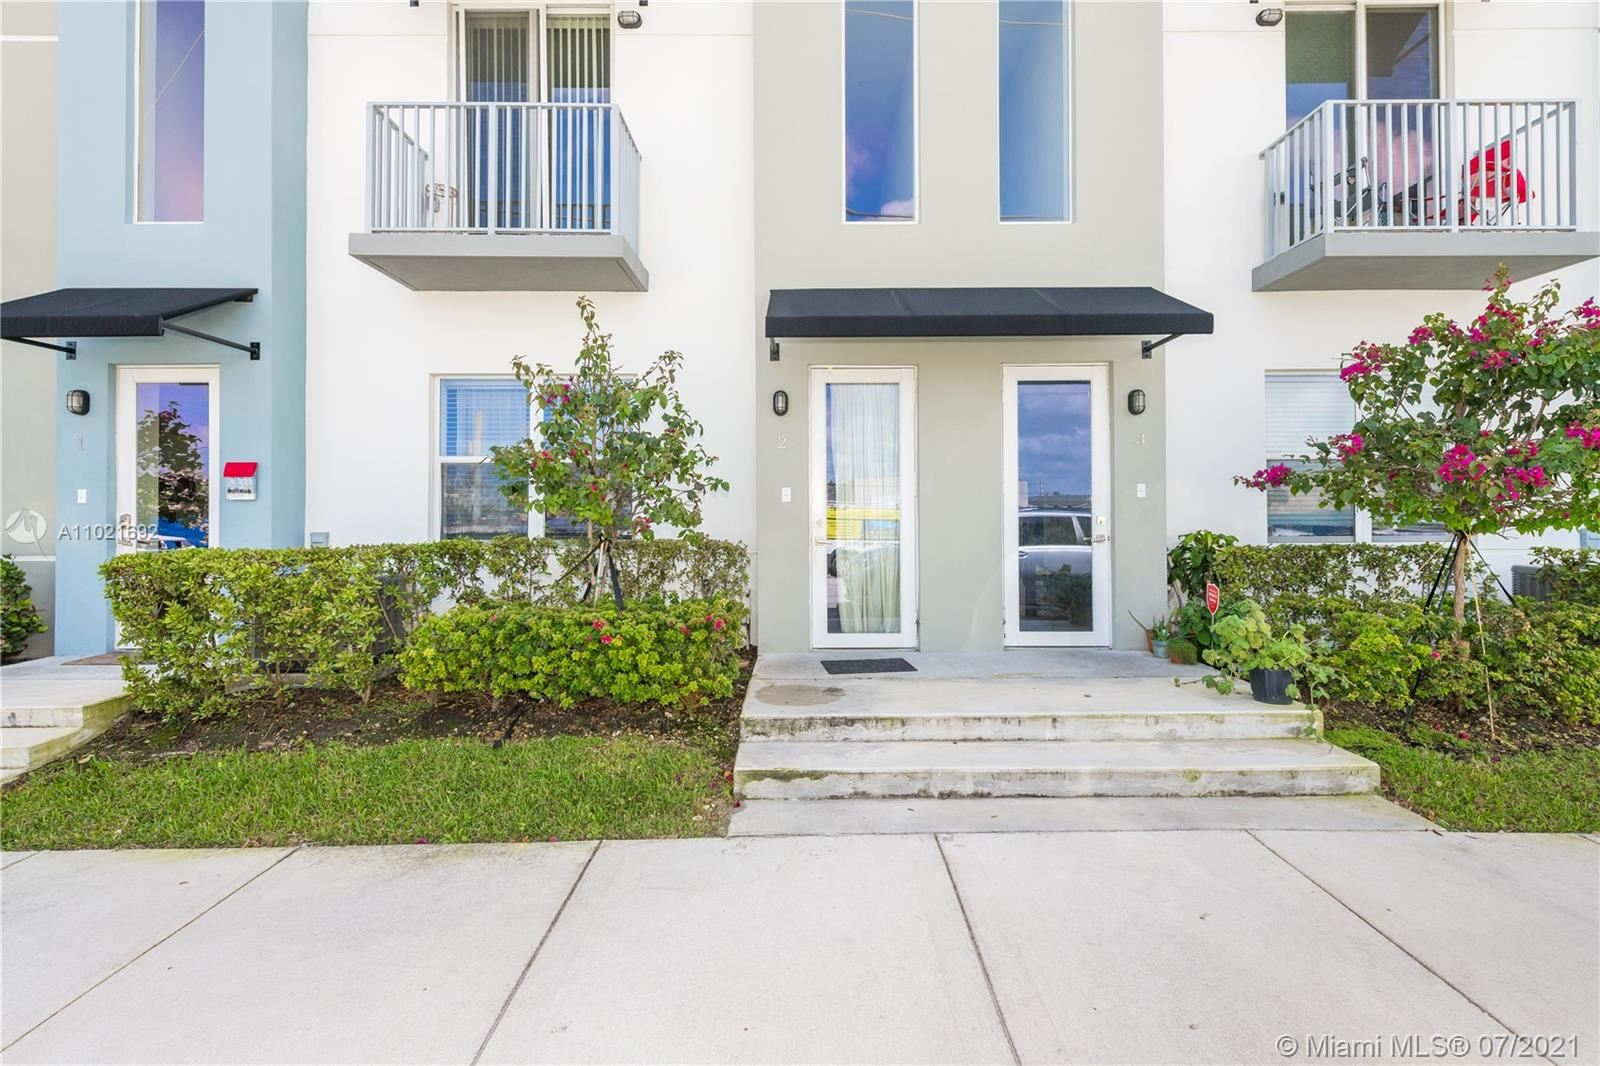 420 NE 35th Ct #2, Oakland Park, FL 33334 - #: A11021692